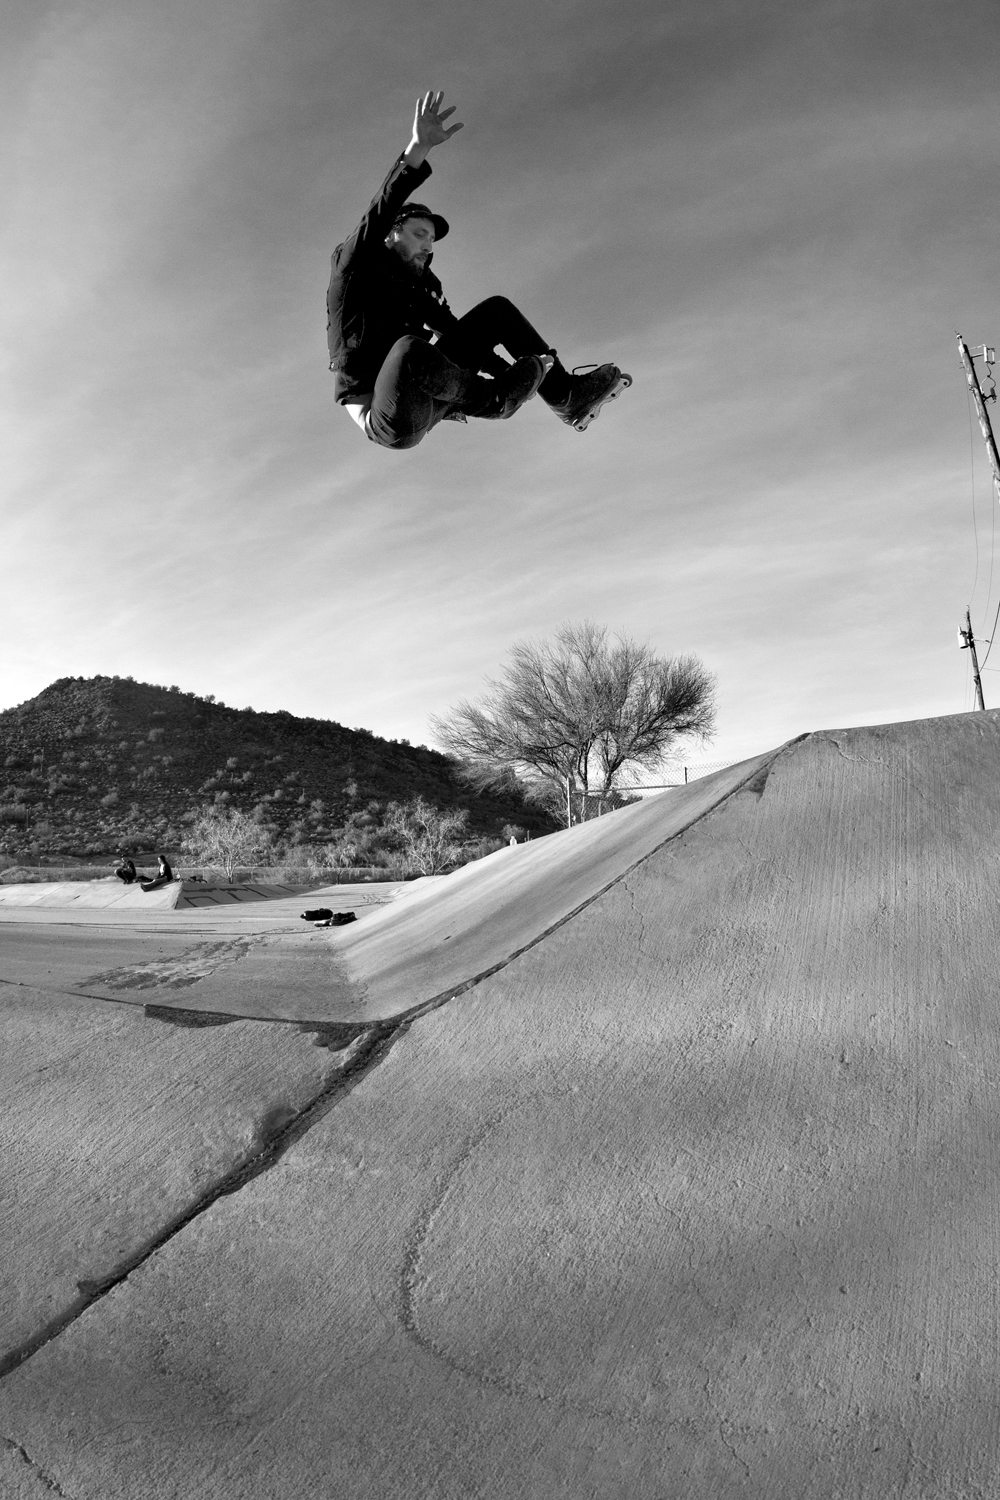 Mike Lilly - Fakie 540 Stale in Phoenix, AZ  Canon 5D Mark II, Canon 15mm f/2.8 Fisheye (iso800, f/8, 1/1250s)